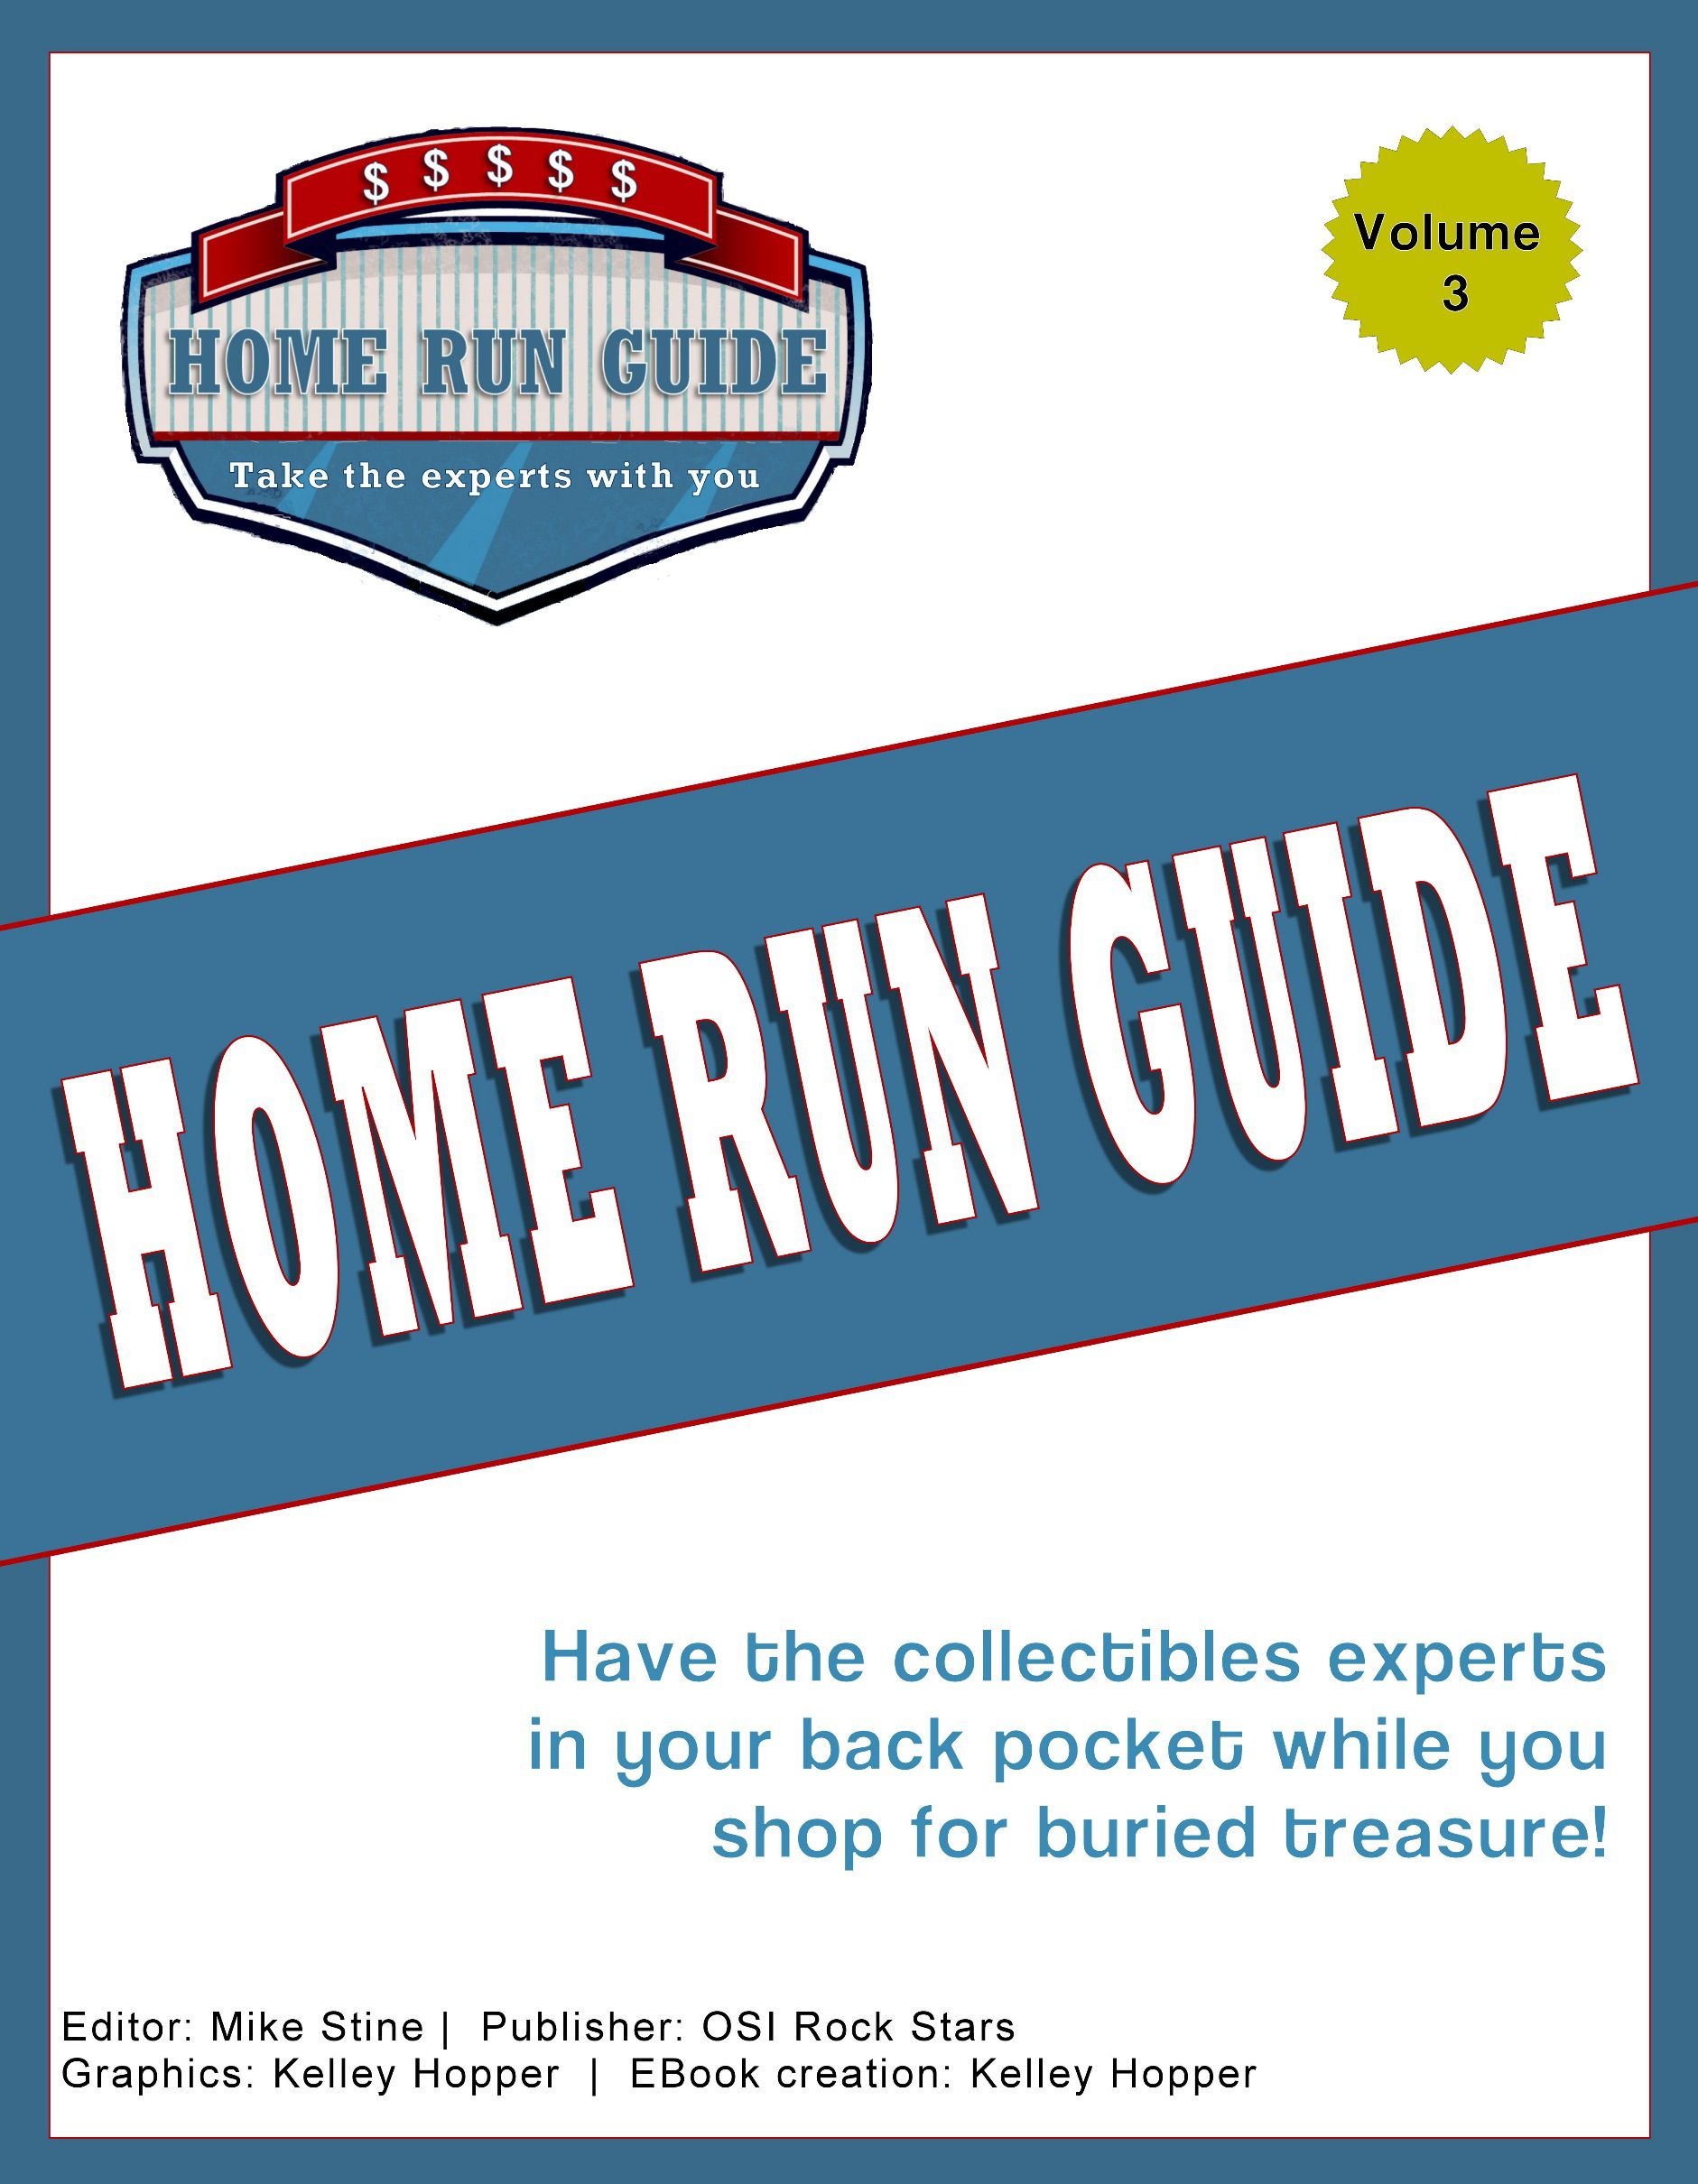 Click to view the Home Run Guide